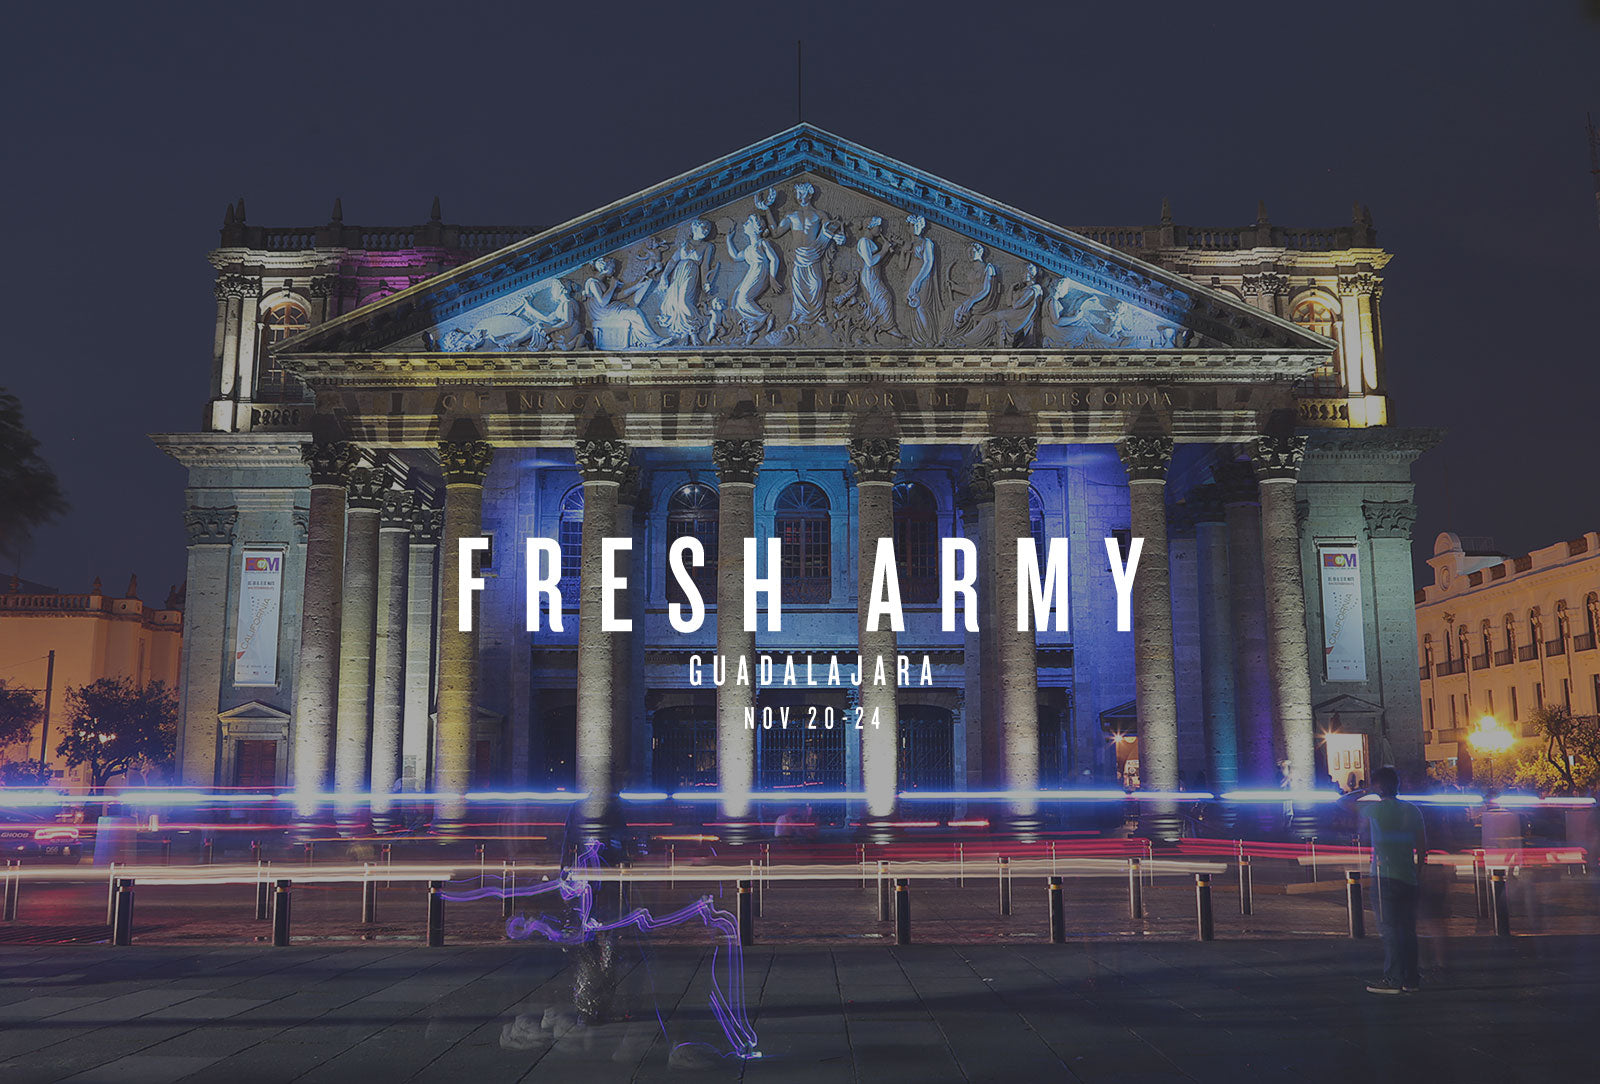 Fresh Army is going to Guadalajara